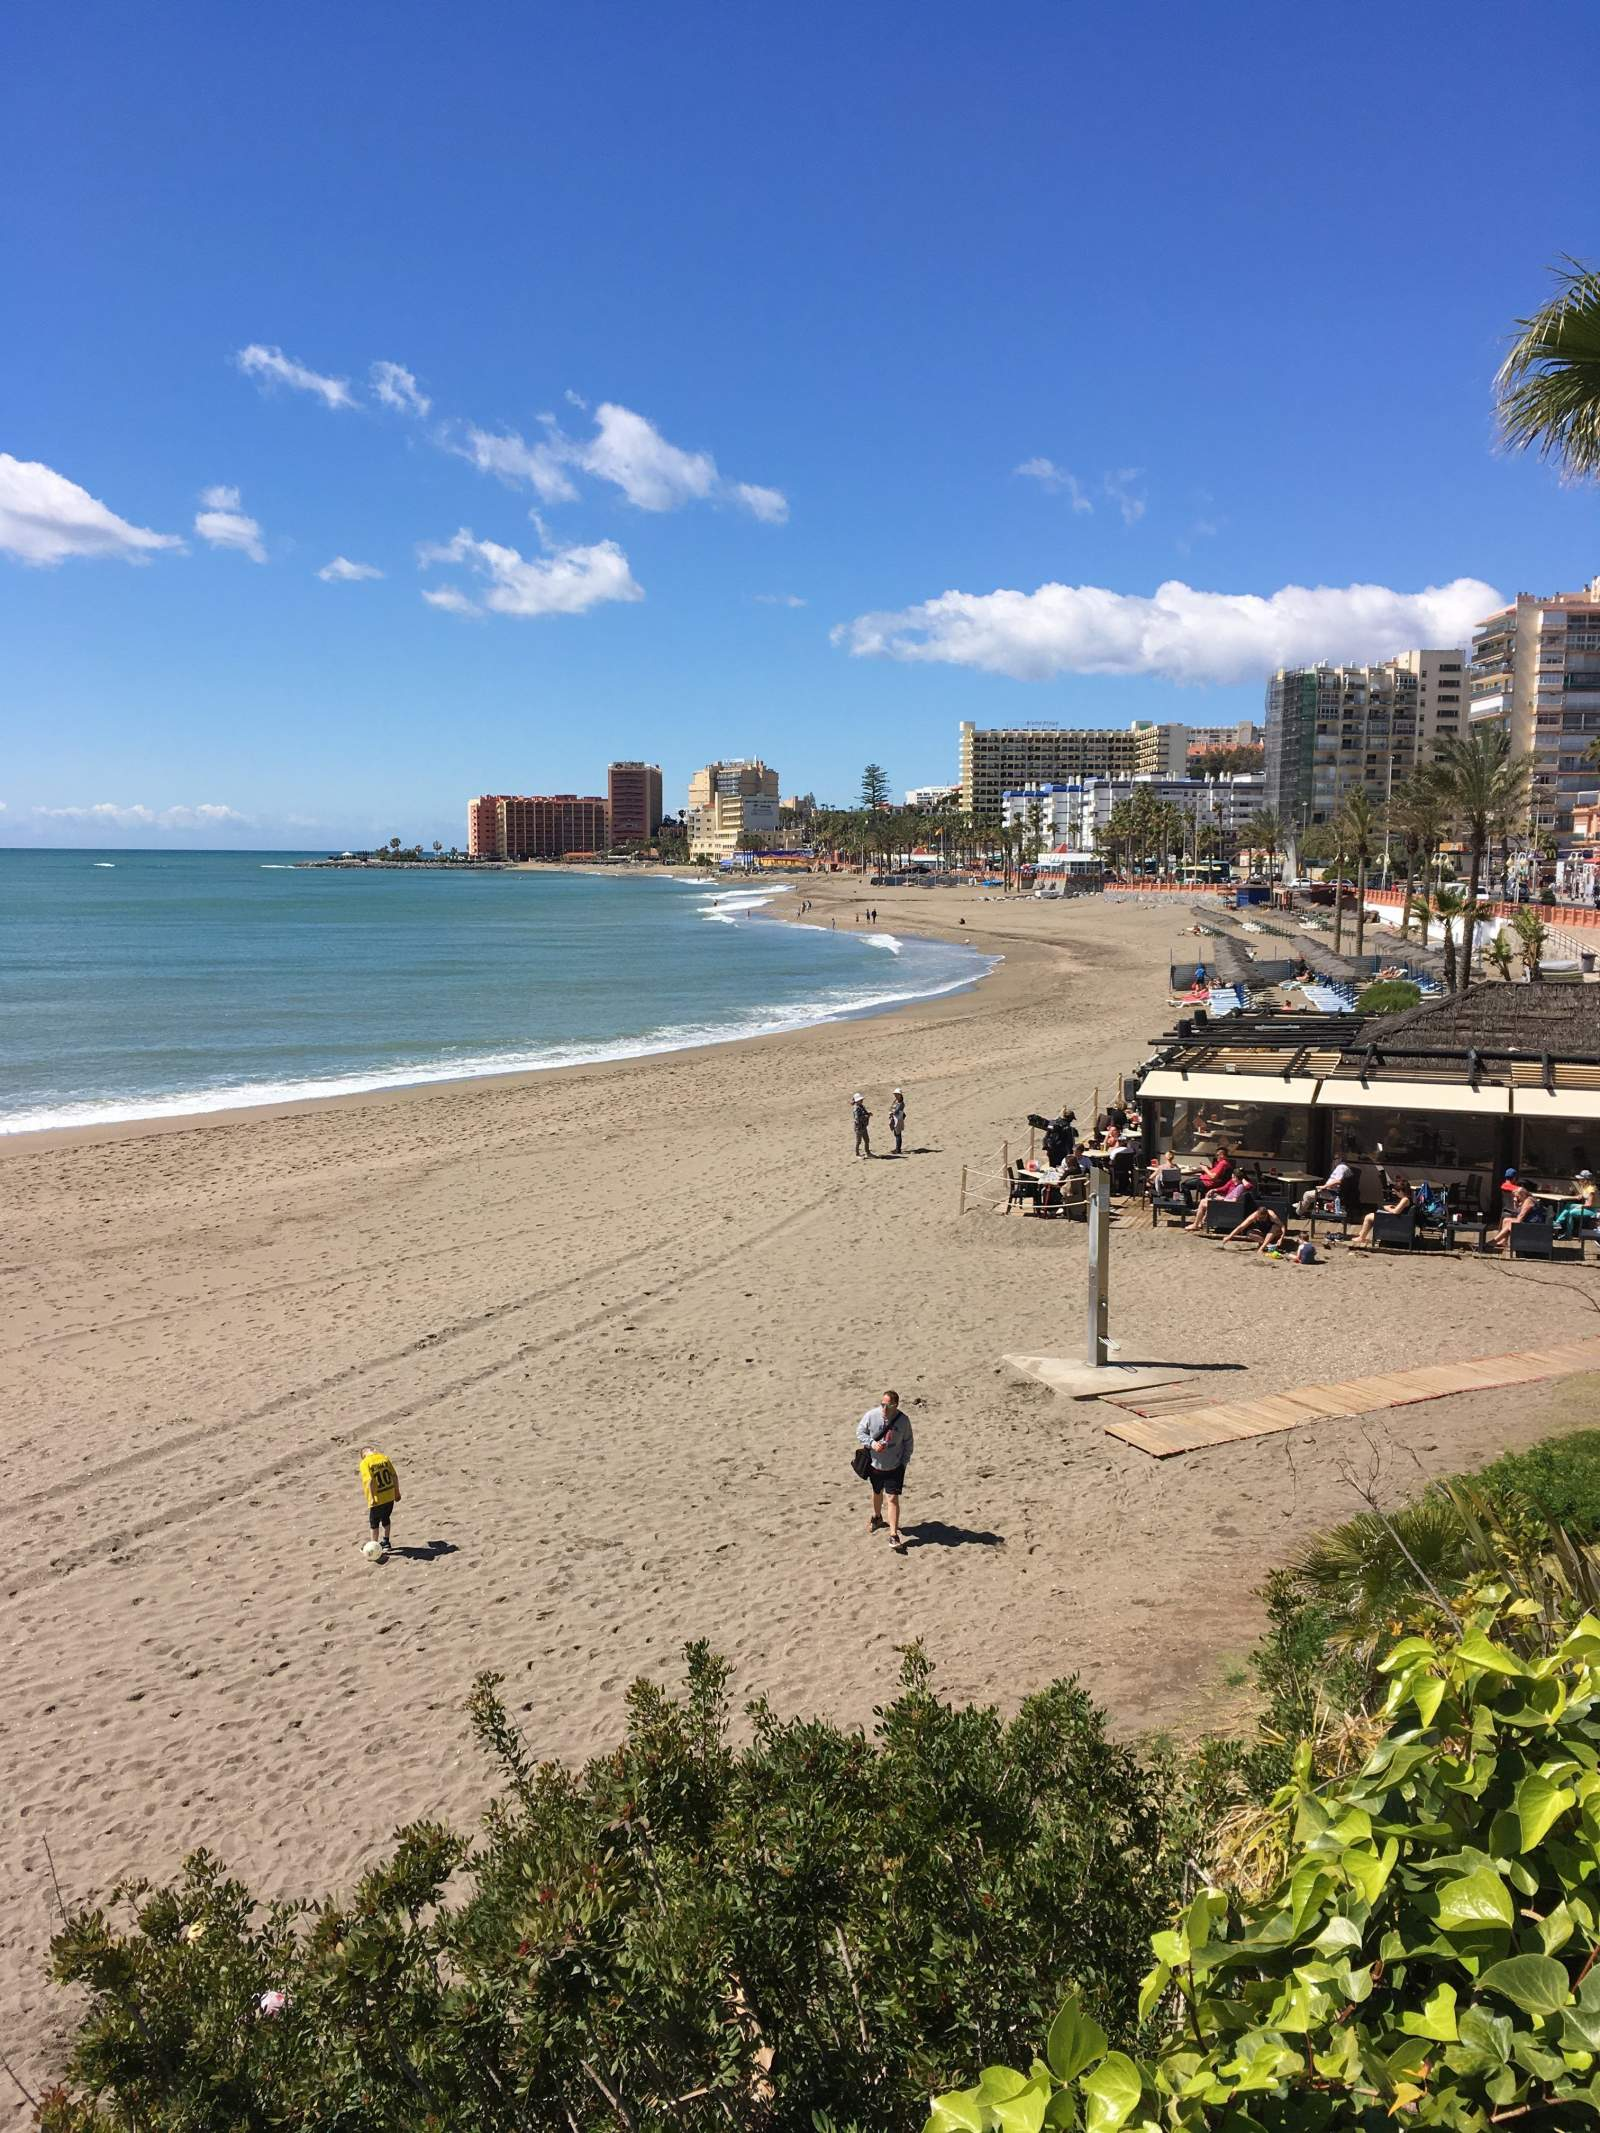 The beach at benalmadena